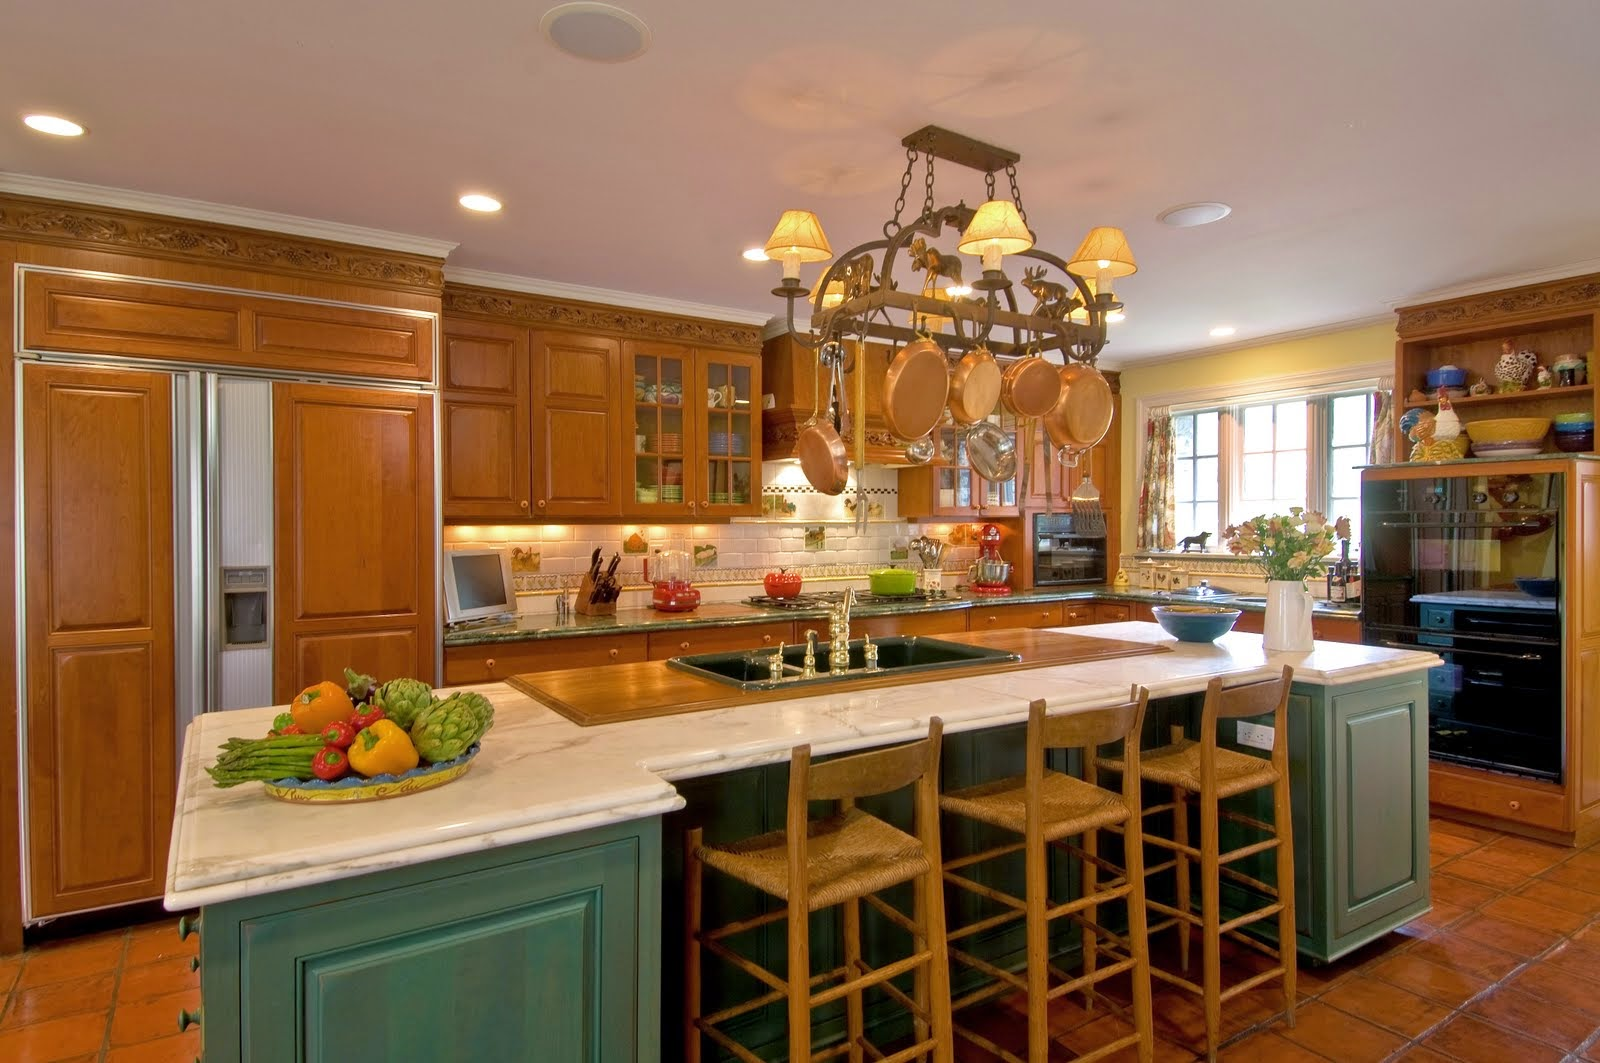 kitchen design westchester ny michael mccann architect westchester architect larchmont 512